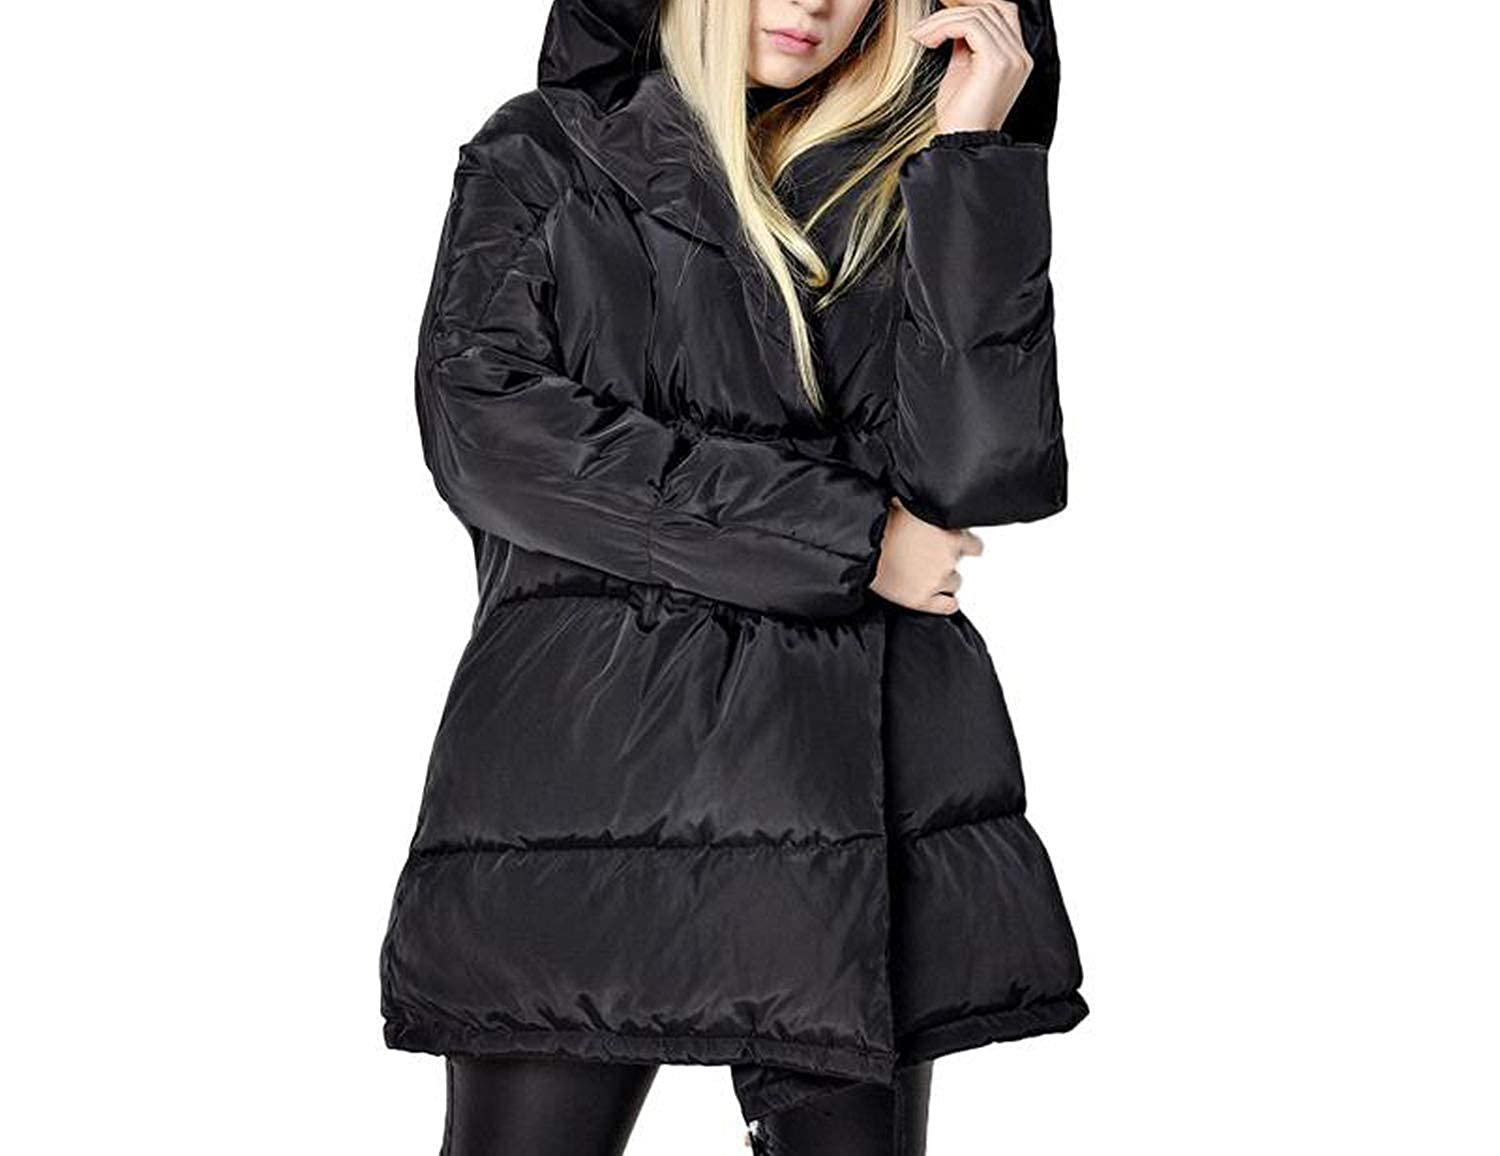 Winter Jackets Women 90% White Duck Down Parkas Loose Coats Medium Long Warm Snow Outwear,Black,M,C